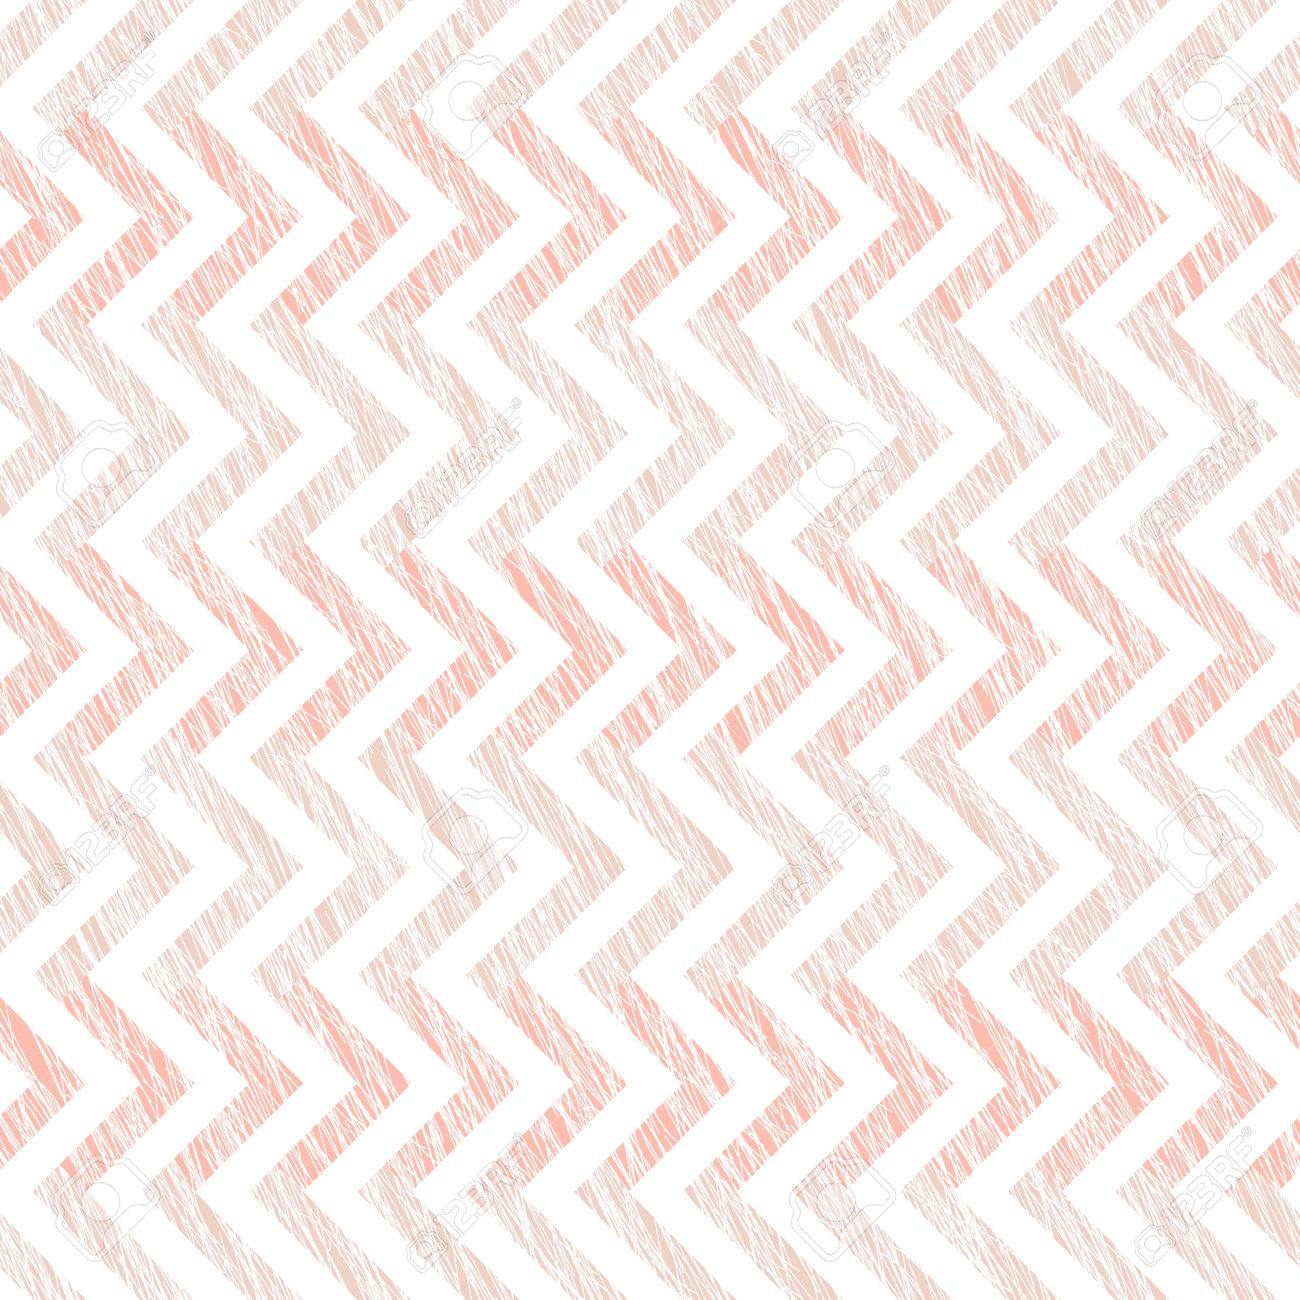 Seamless Pattern Abstract Simple Wavy Background Pale Colored Grungy